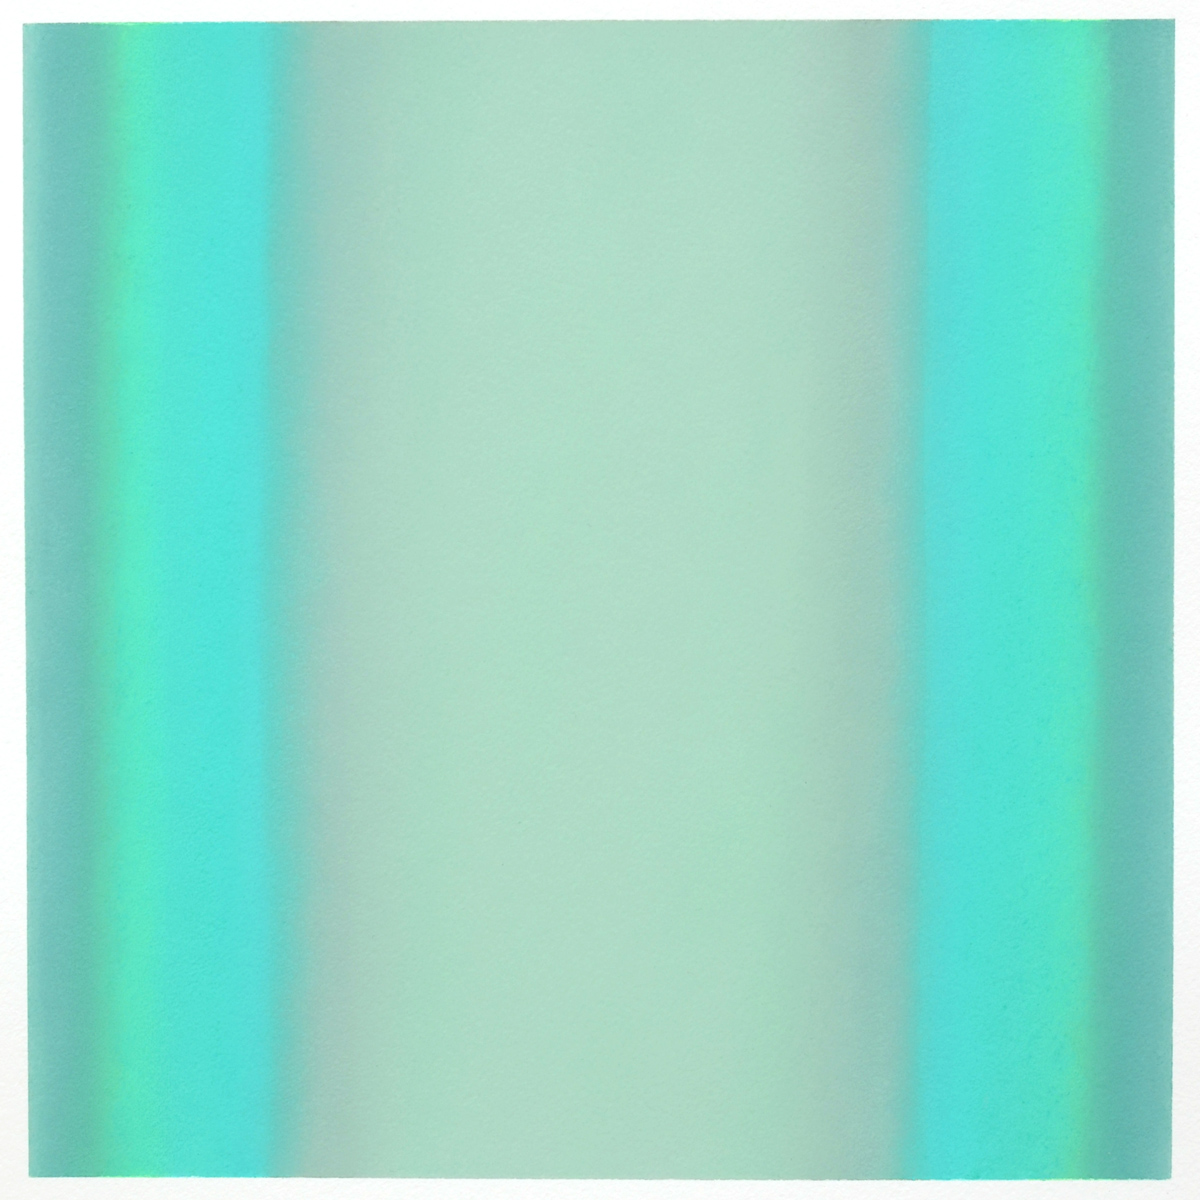 Cool-Light Gray-Green, Interplay Series, 2012, pastel on paper, image: 14 x 14 in. (36 x 36 cm.), sheet: 30 x 22 in. (76 x 56 cm.)